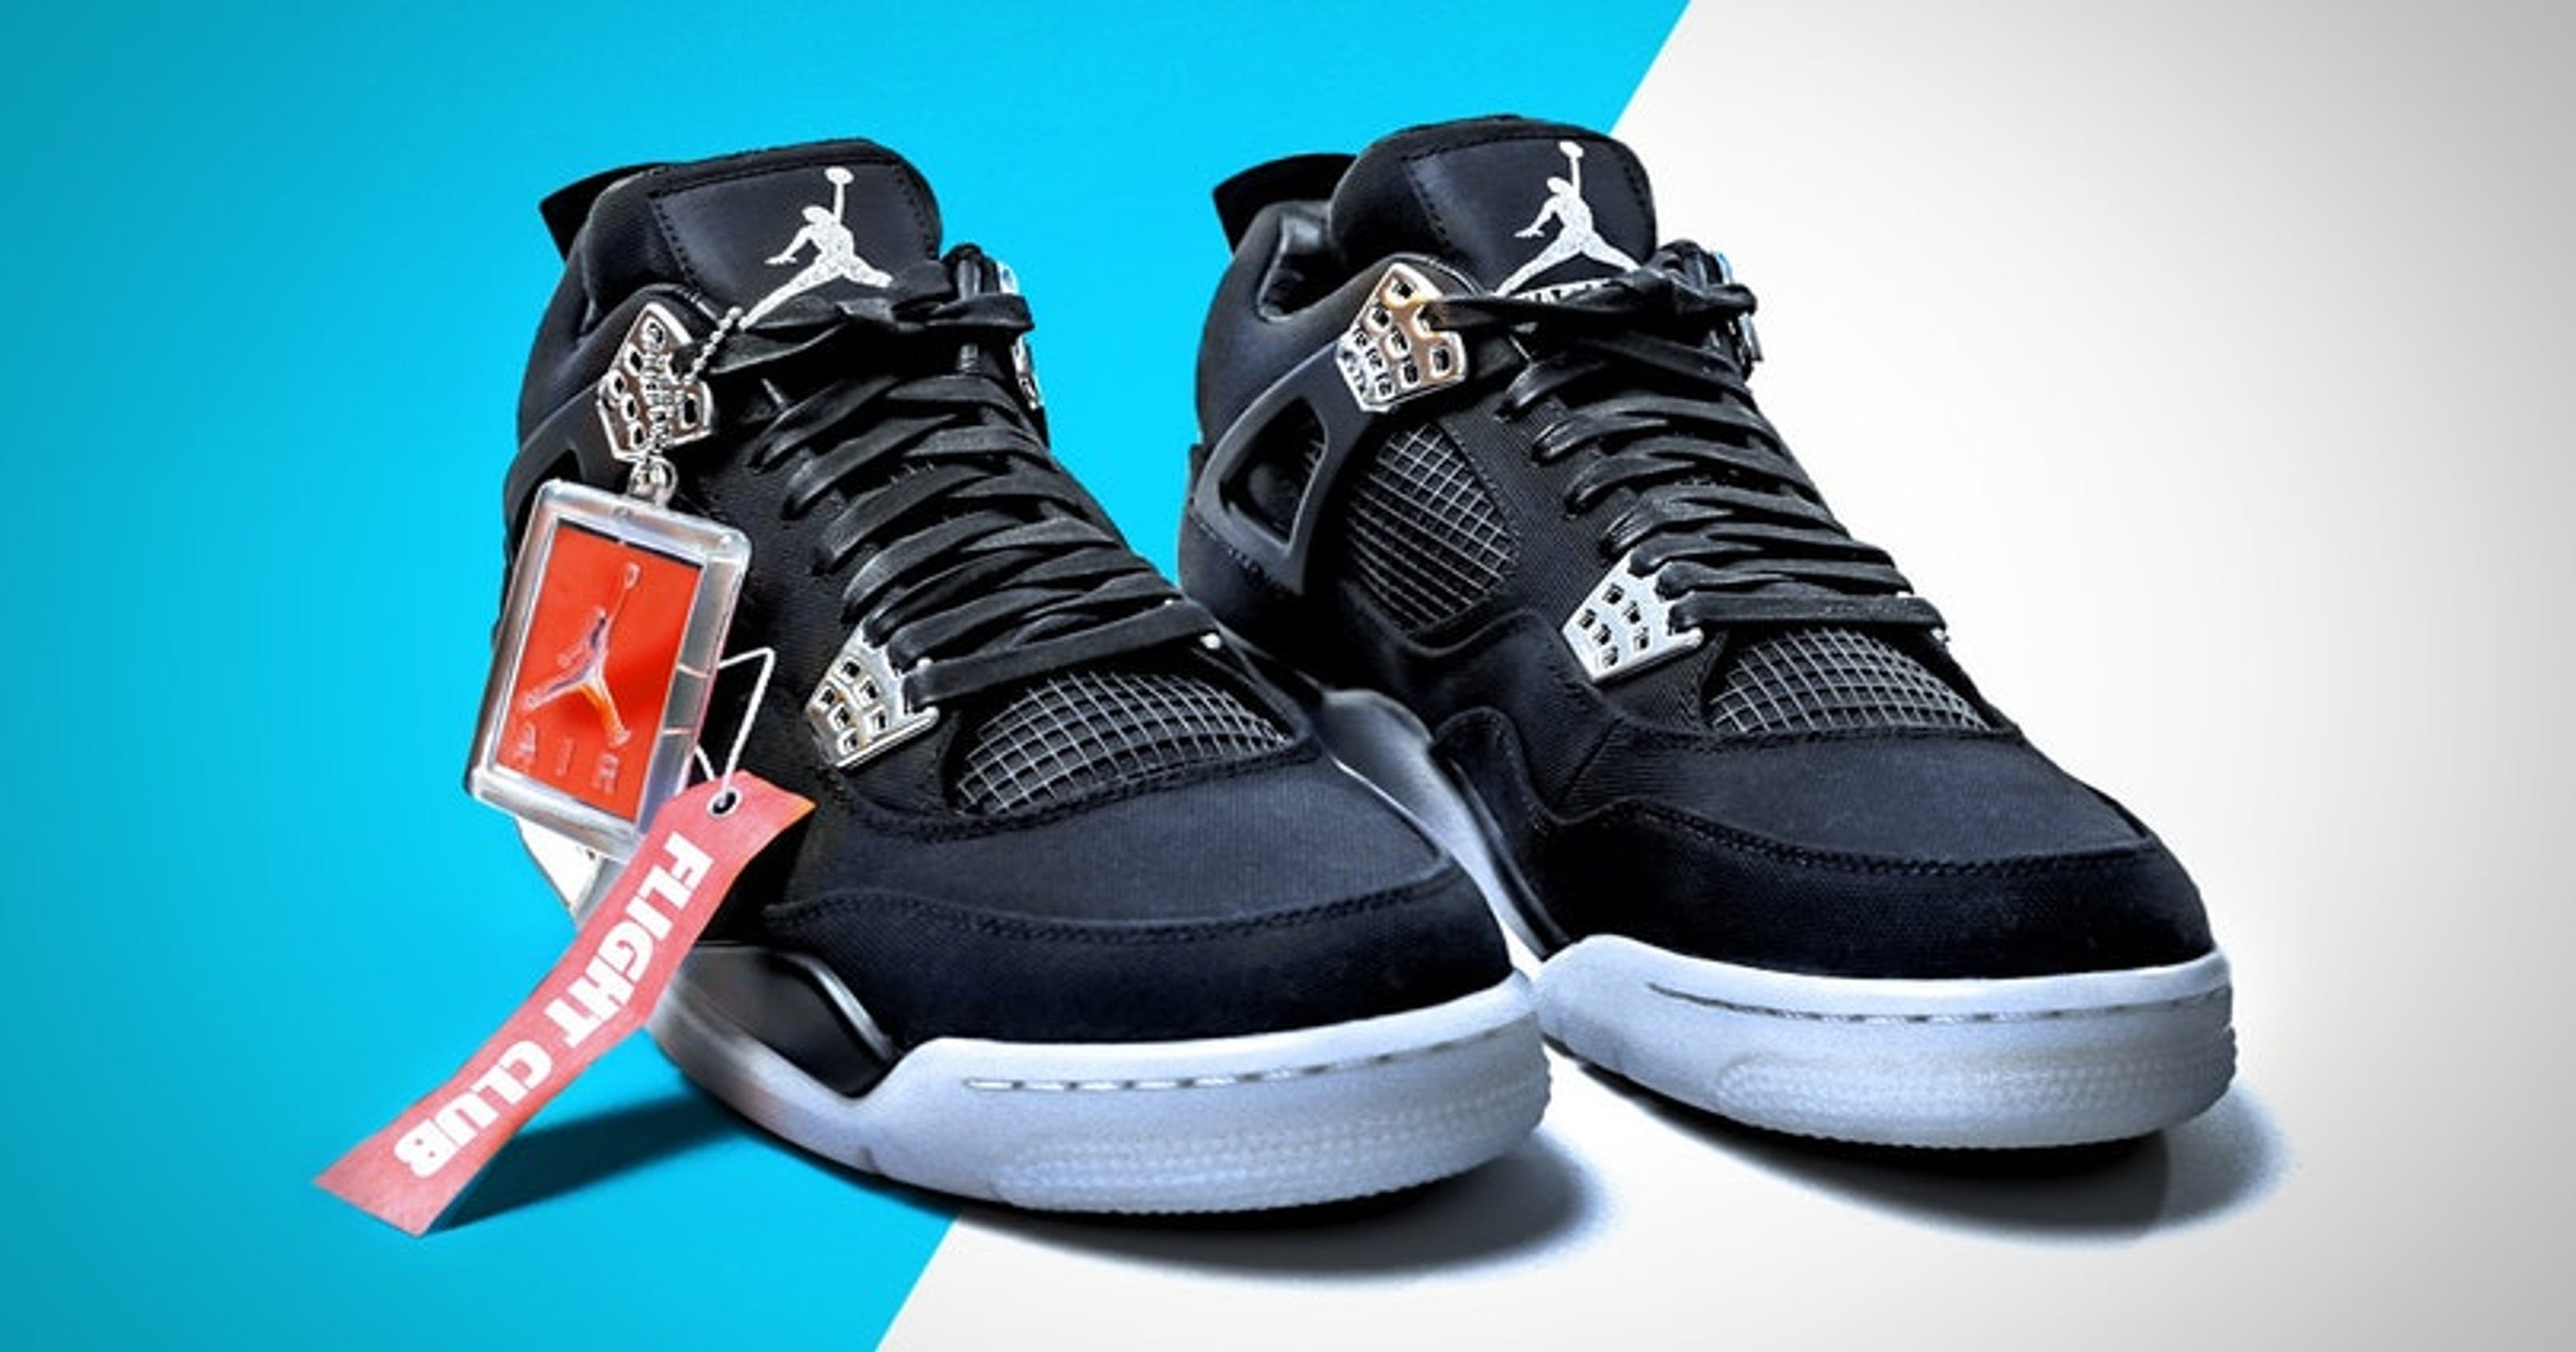 6a7e13072b3b Rare Eminem Nike Air Jordan 4 kicks up for auction